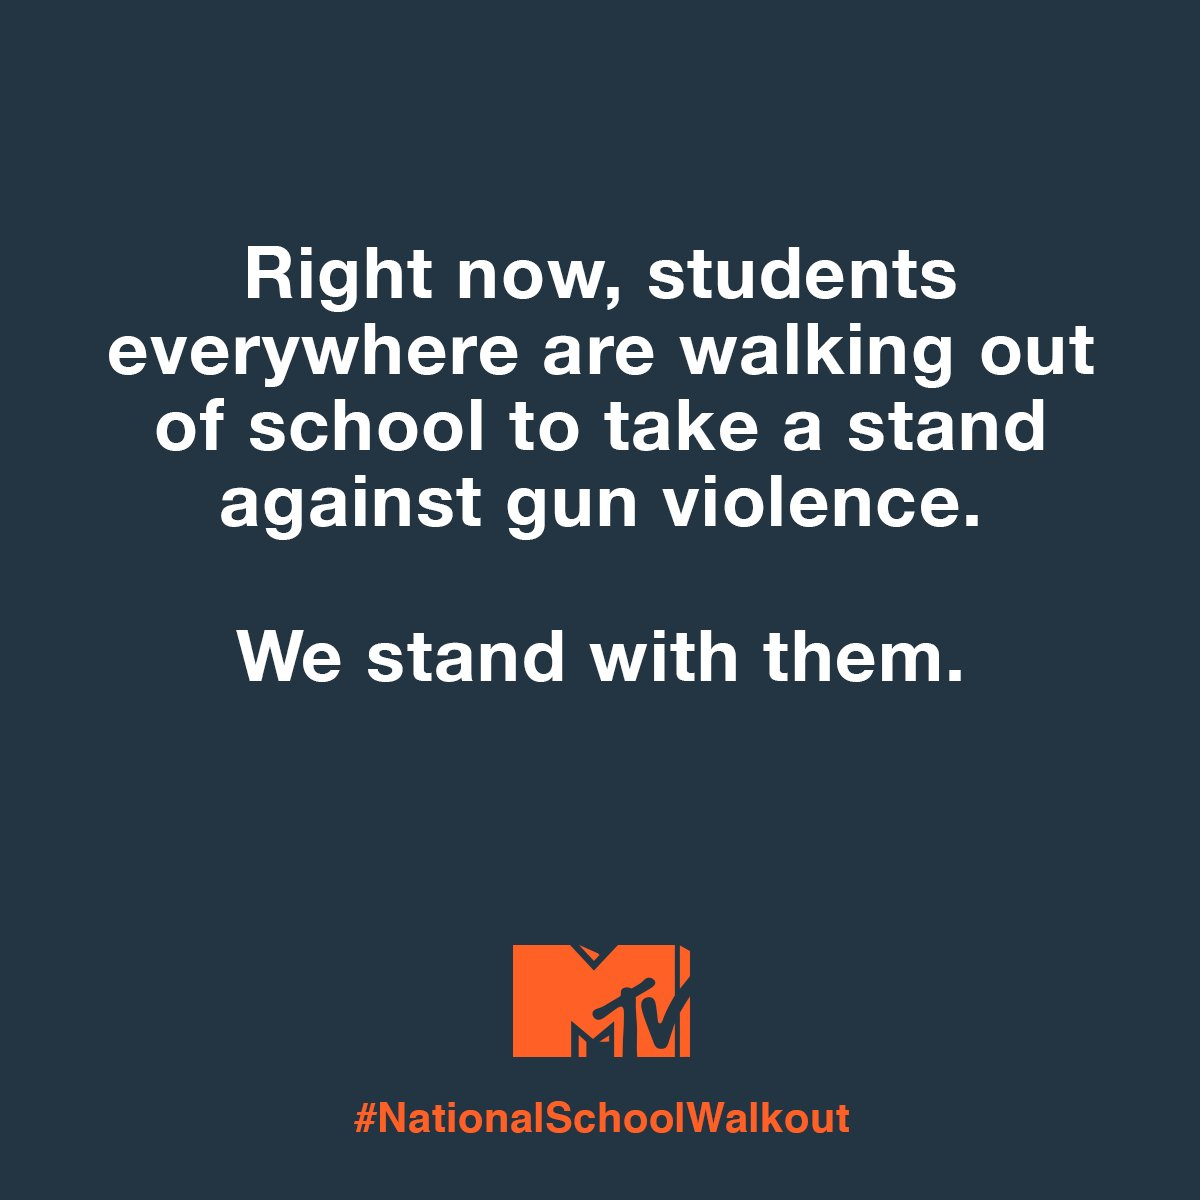 Today we stand in solidarity with the #NationalSchoolWalkout against gun violence. | https://t.co/7vbOJmqQkN https://t.co/q77qtSmCEe